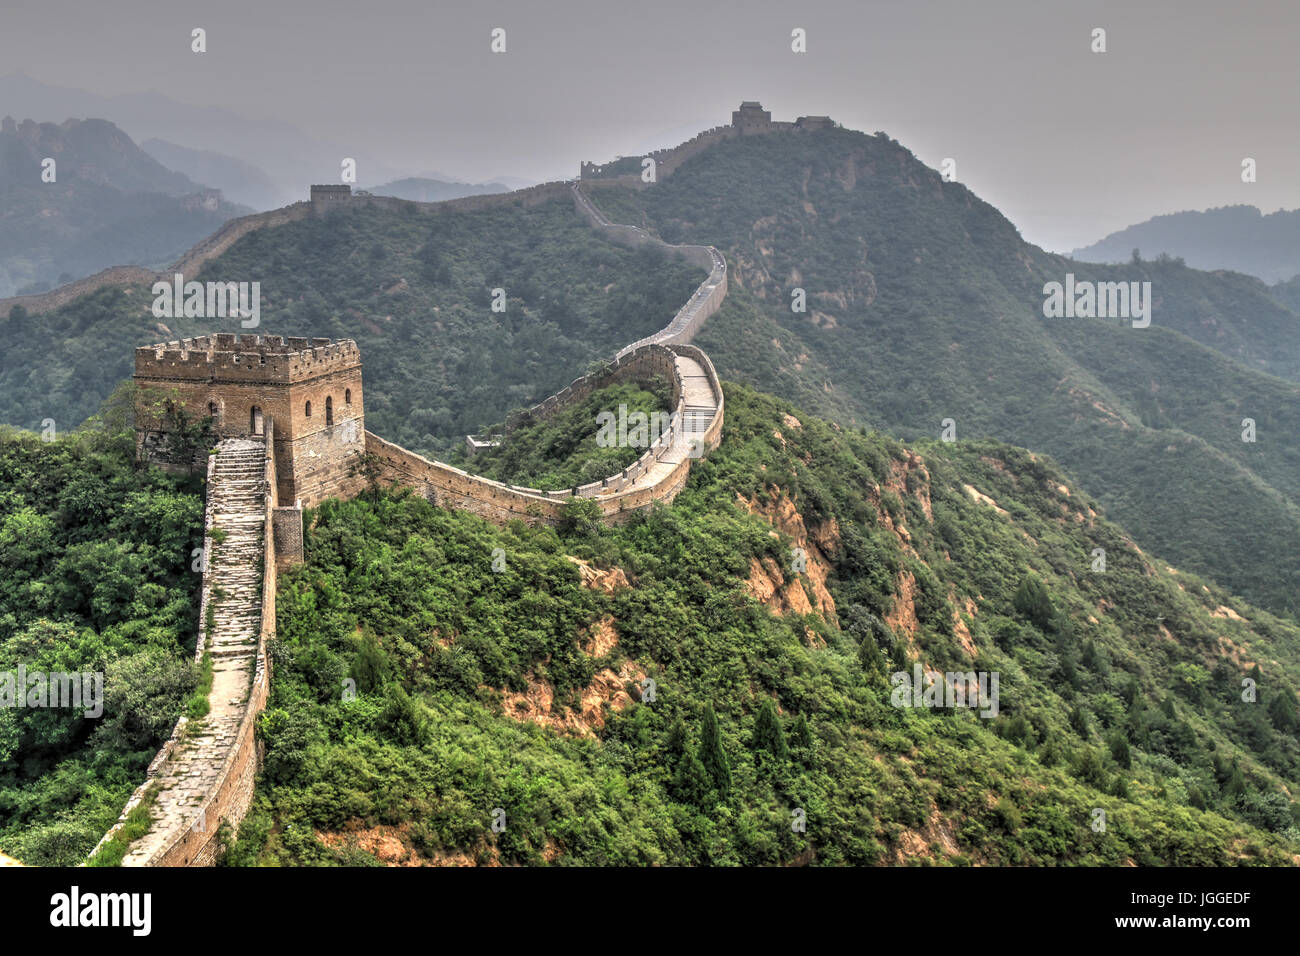 Great wall of china Jinshanling - Stock Image